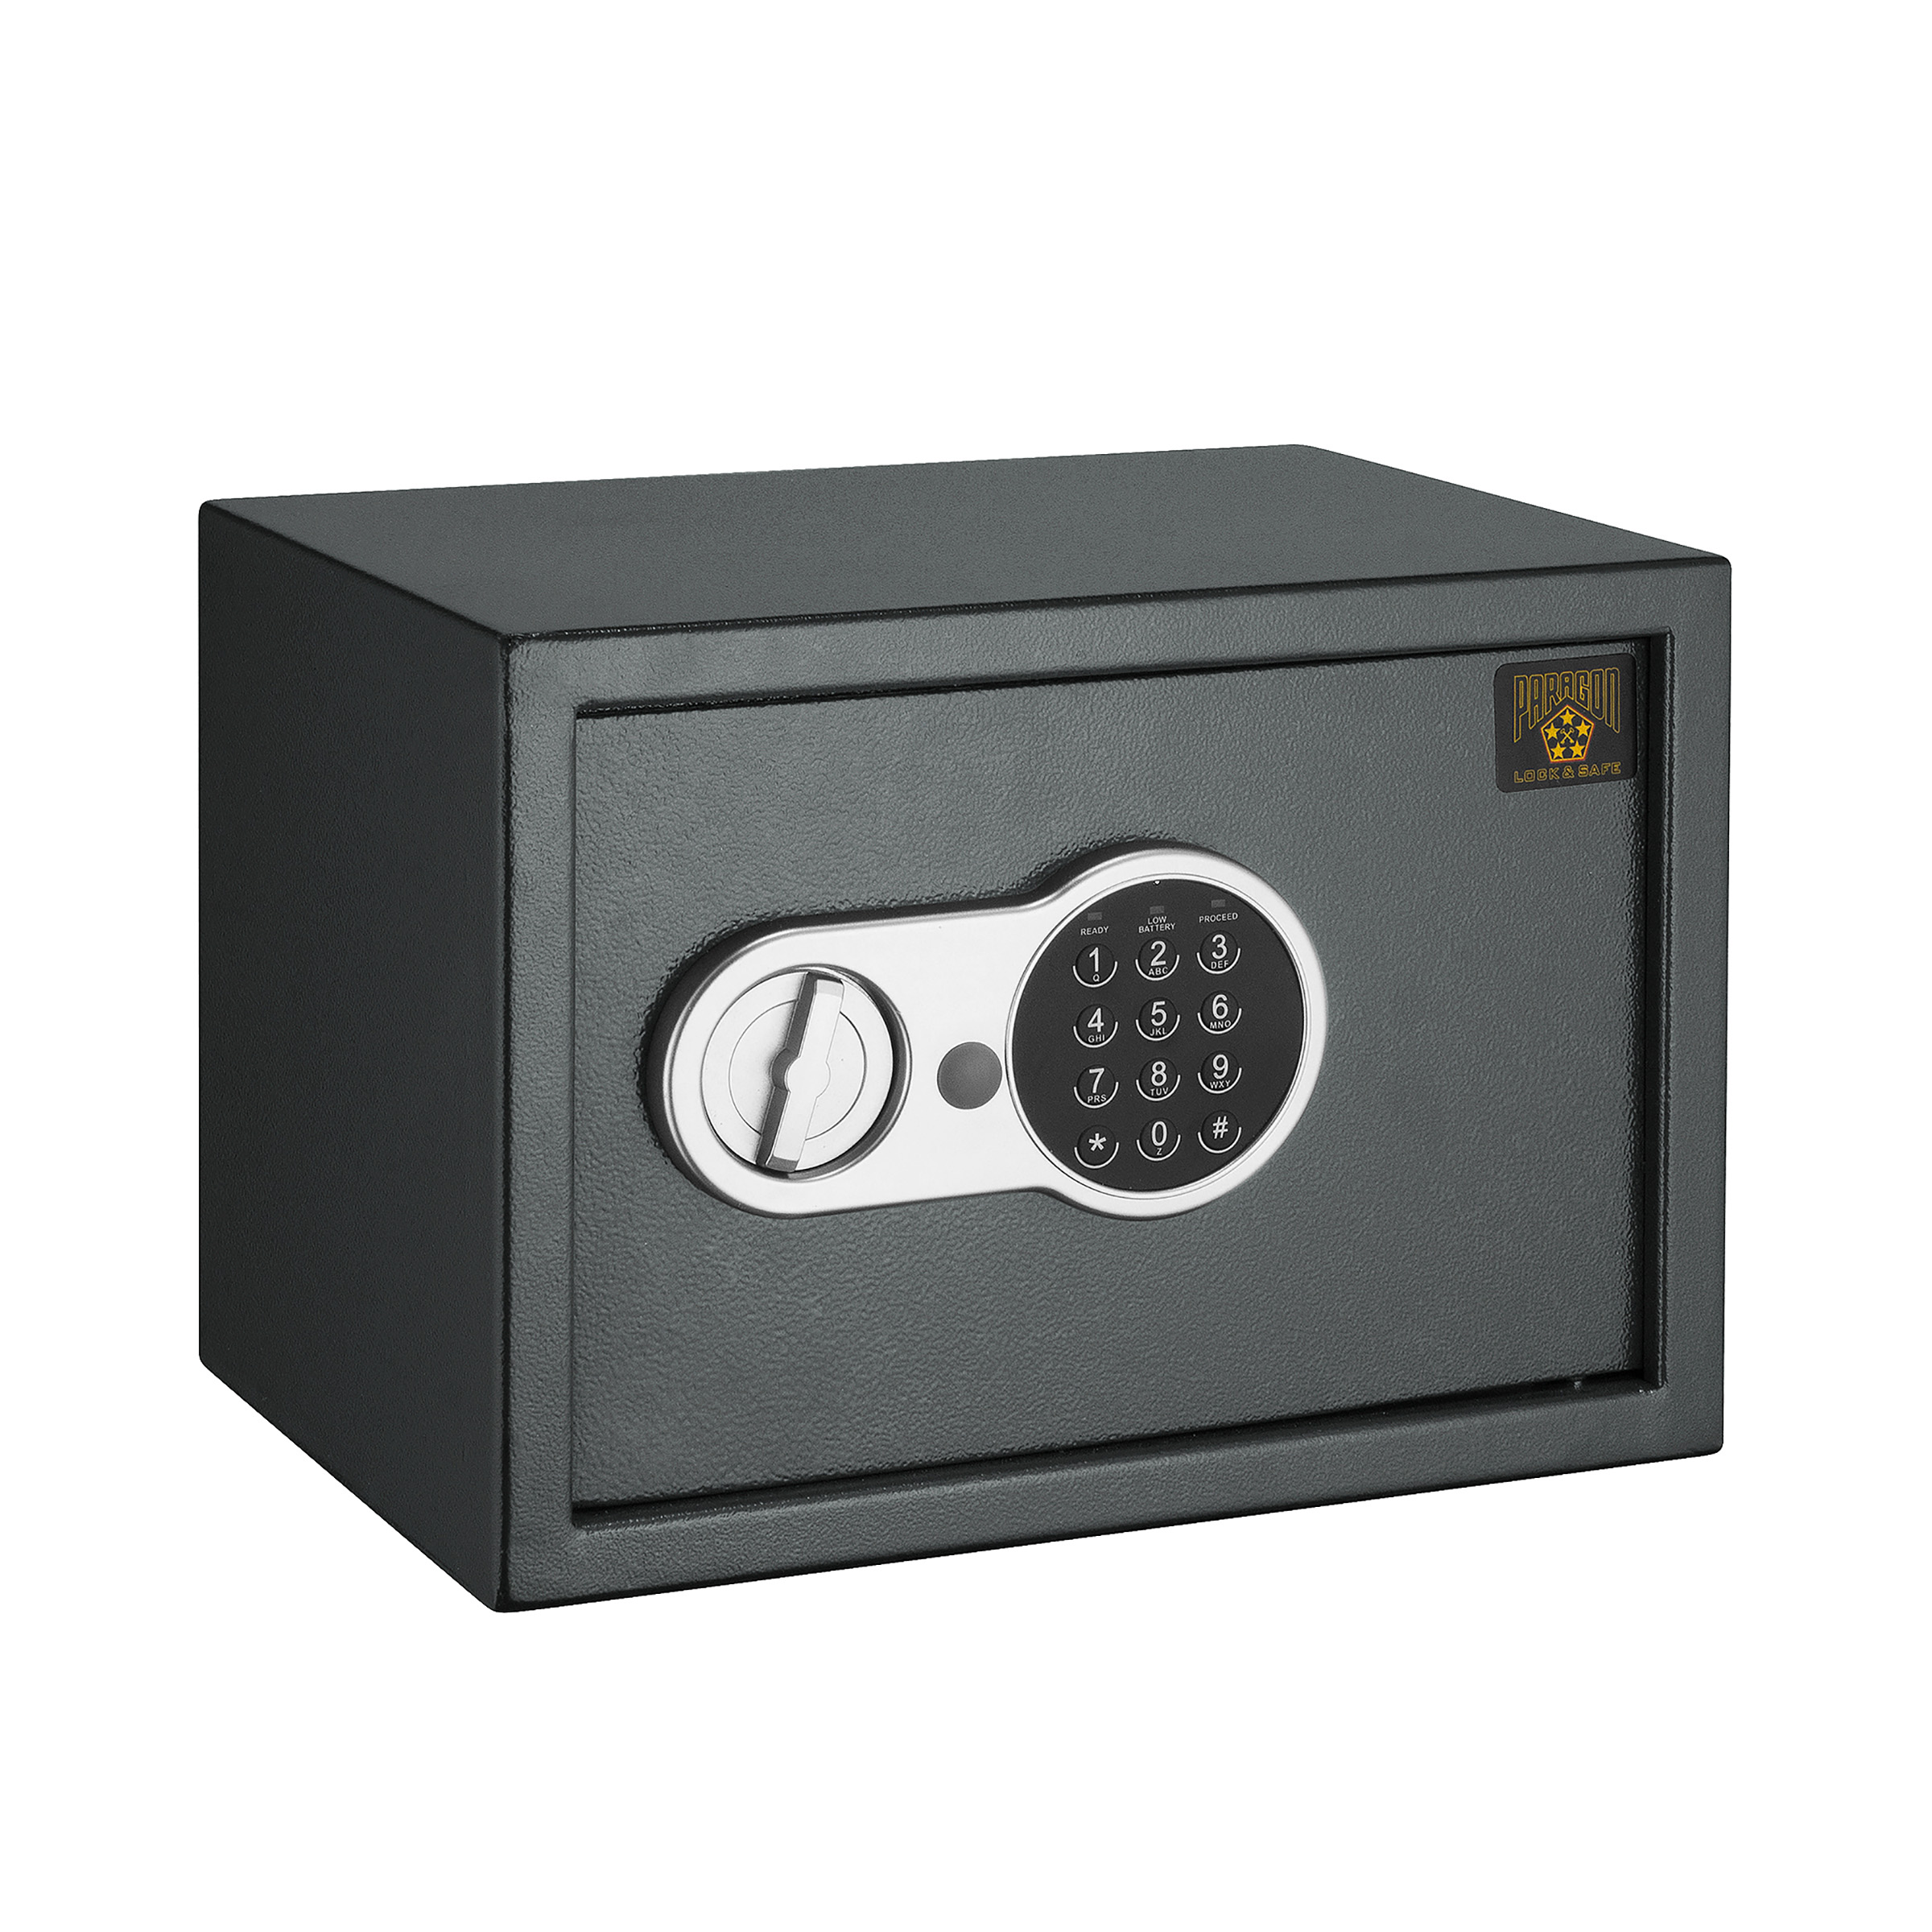 Paragon Lock & Safe Electronic .6 CF Digital Entry Deluxe Safe for Home Security